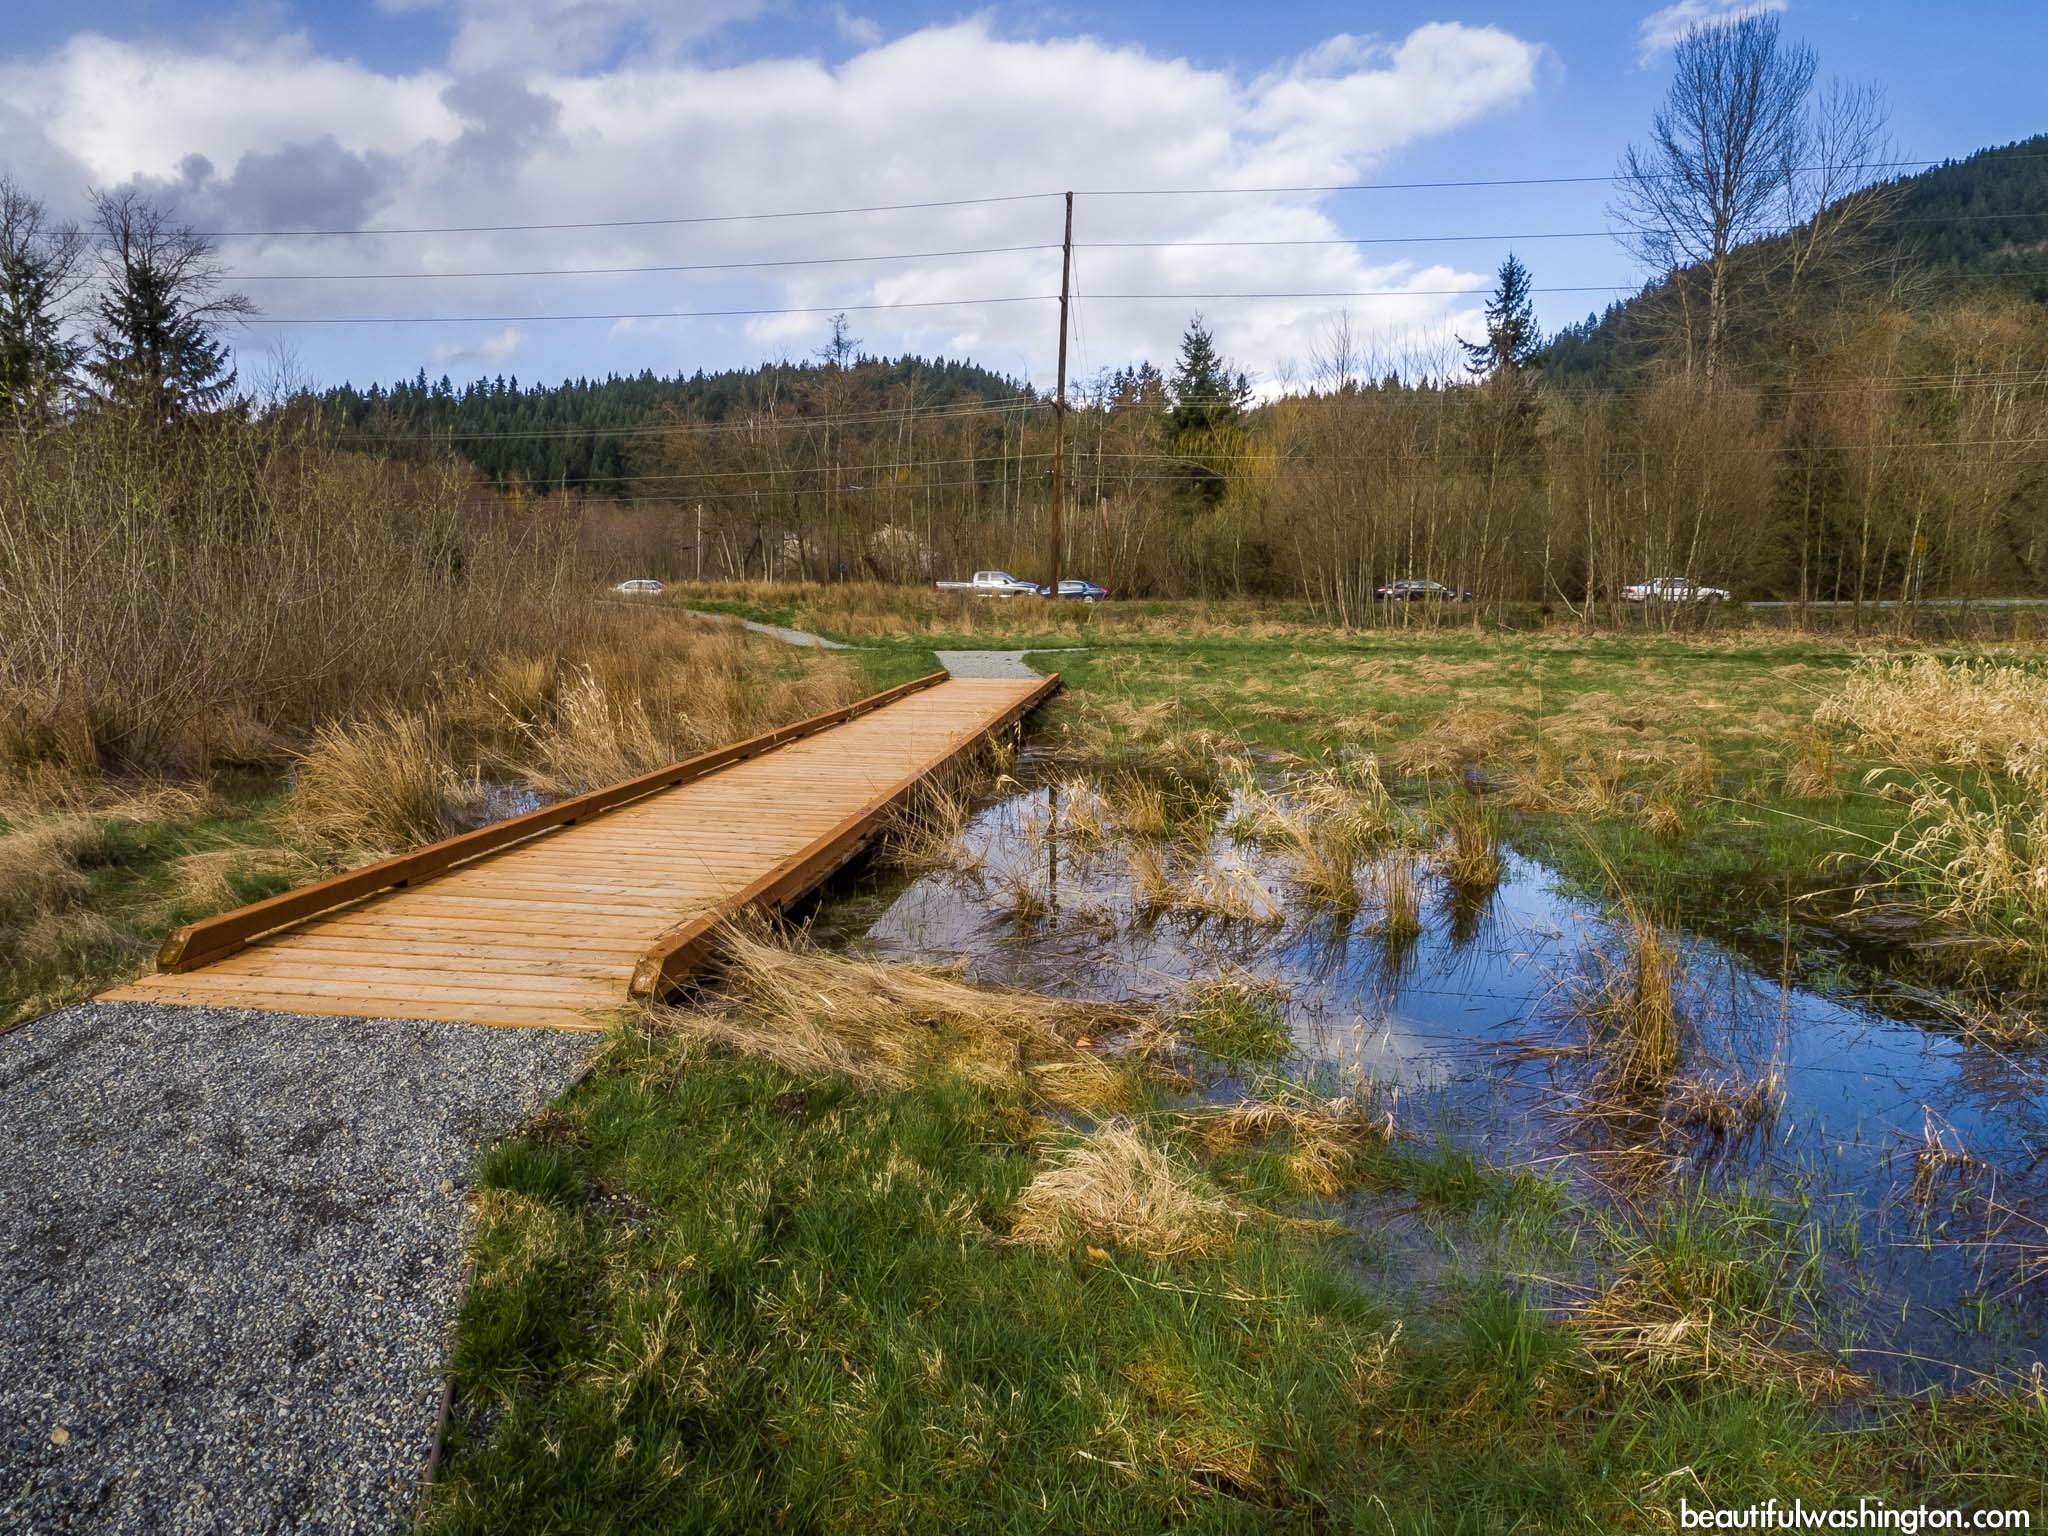 Photo from King County, City of Issaquah, Issaquah-Hobart Road Park